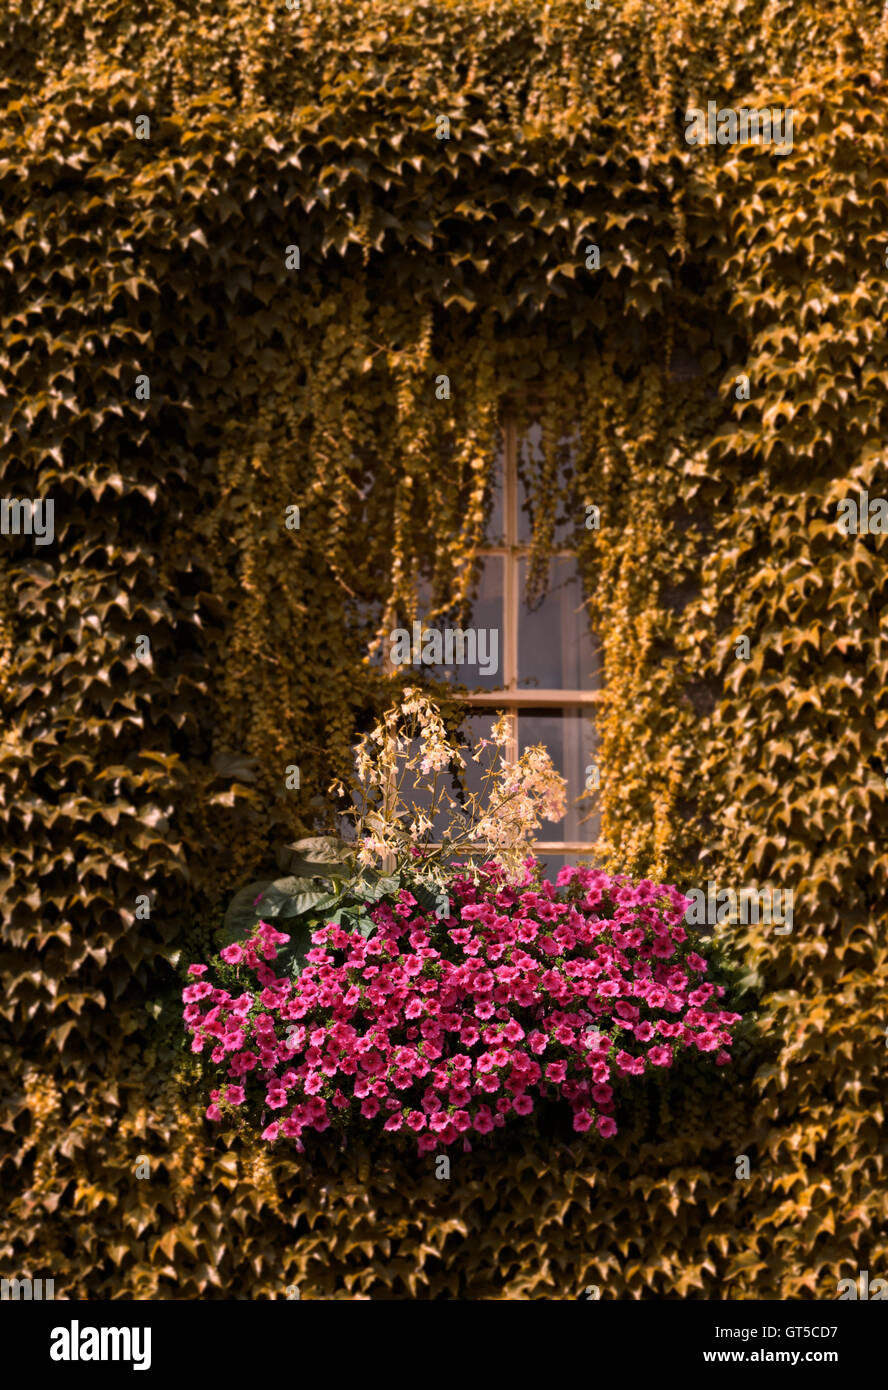 Ivy draped around in an arch over window box of pink flowers, ivy has been changed to a bronze colour effect. Unsharpened - Stock Image